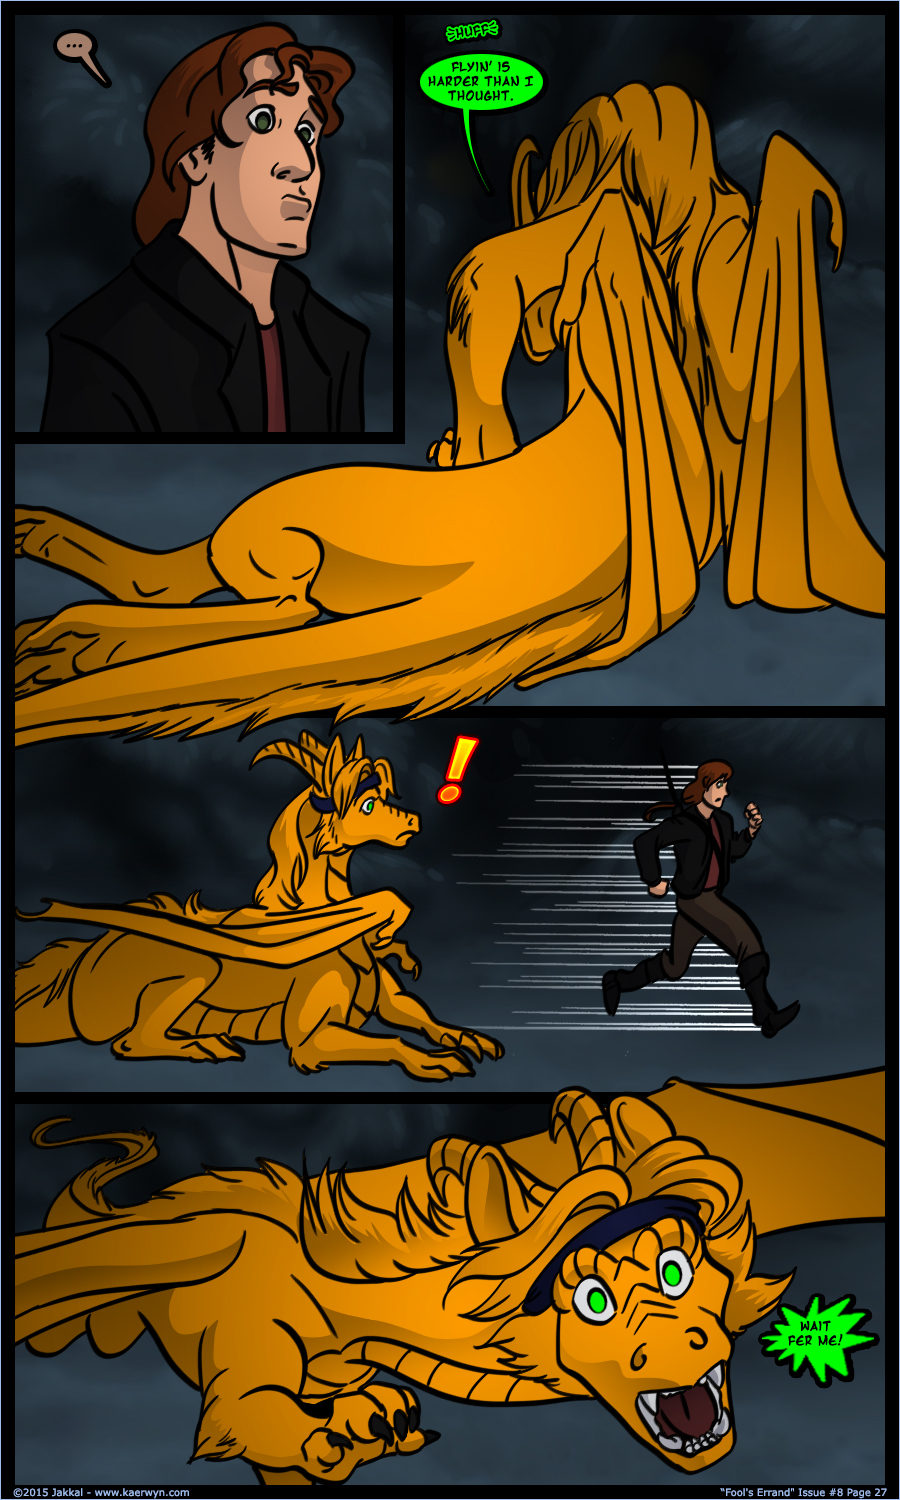 Issue 8 Page 27